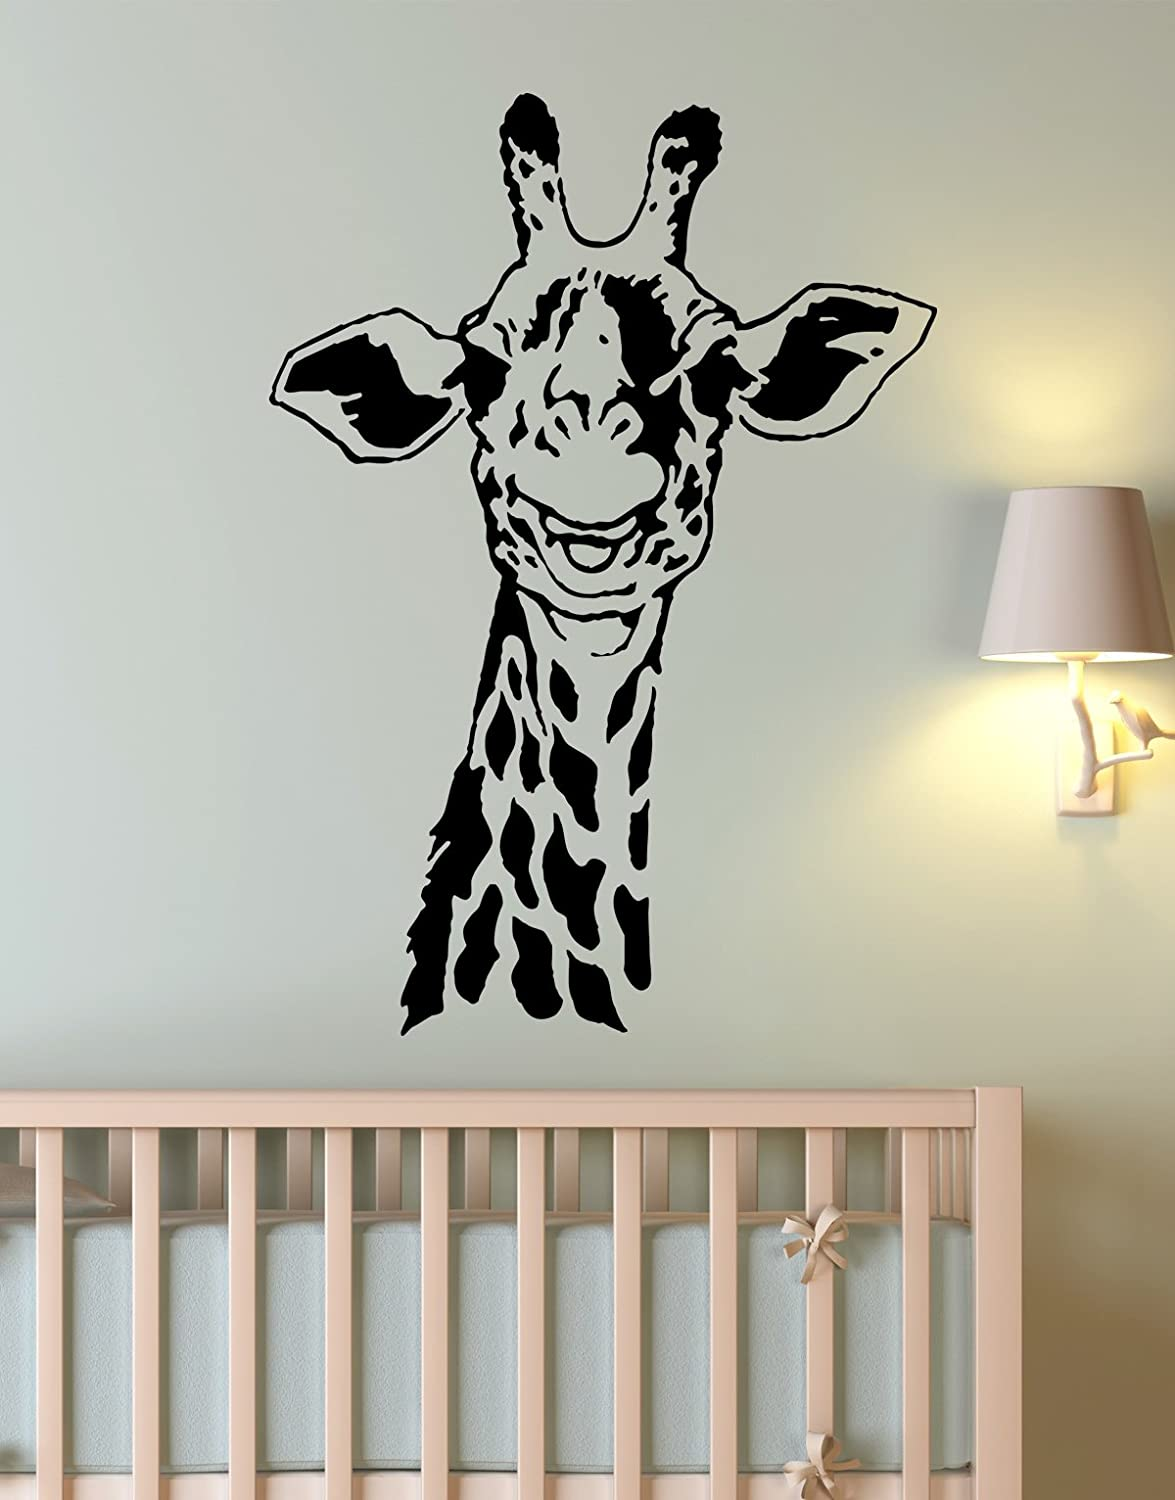 Amazoncom African Safari Giraffe Wall Decal Sticker By - Vinyl wall decals animals